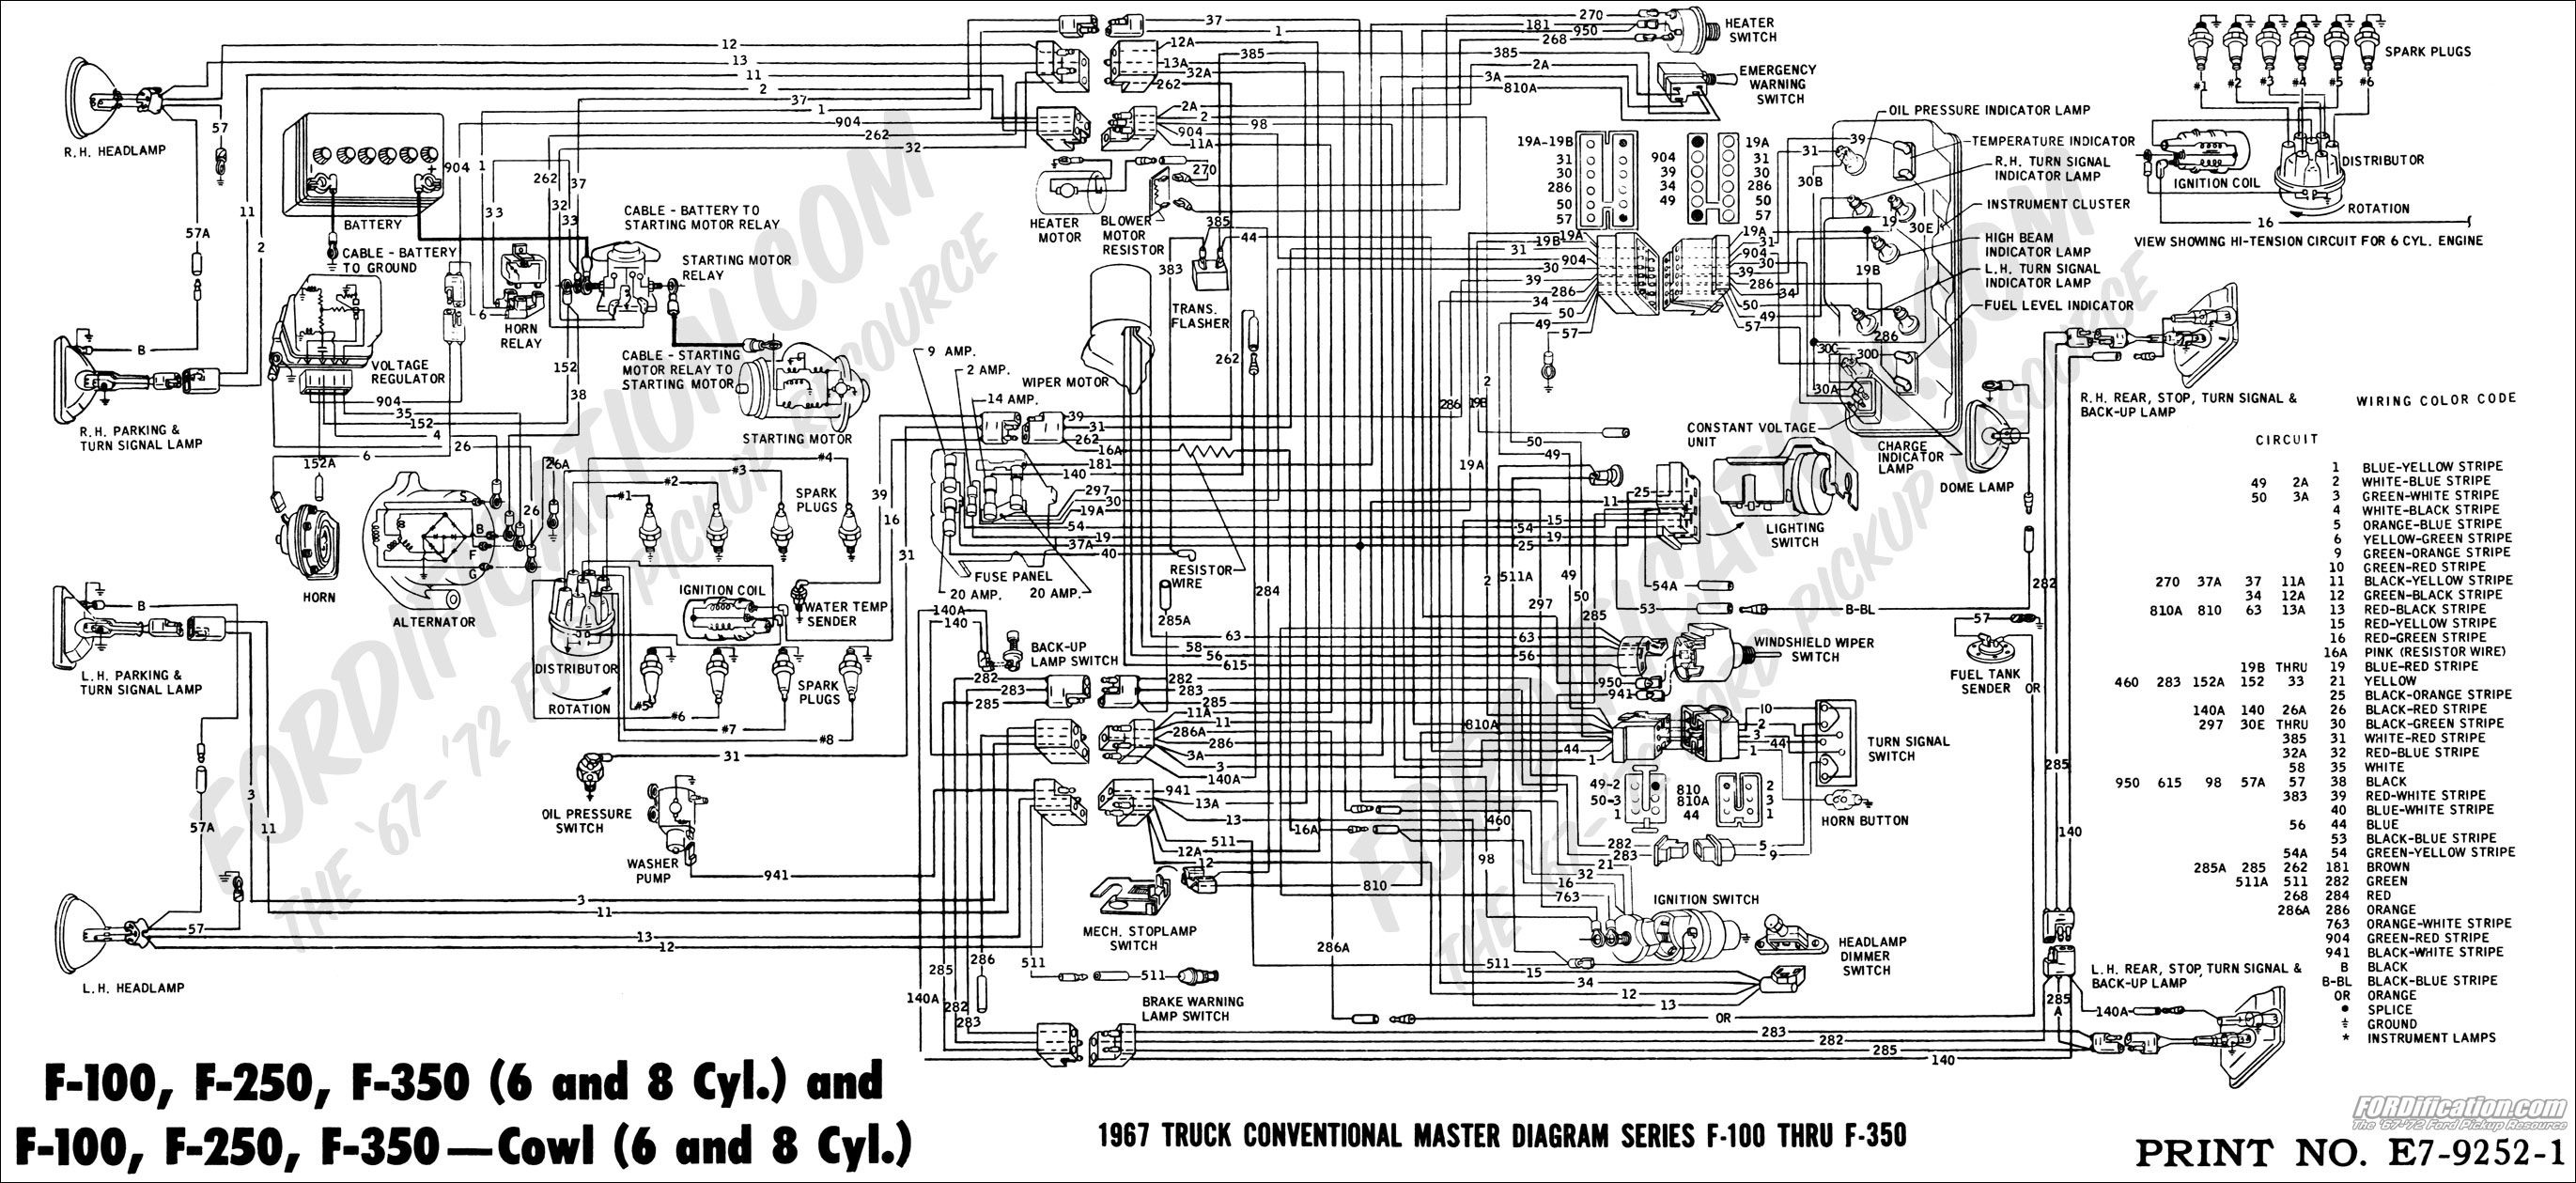 67masterdiagram wiring diagrams ford 2014 f150 readingrat net 2013 f150 radio wiring diagram at reclaimingppi.co